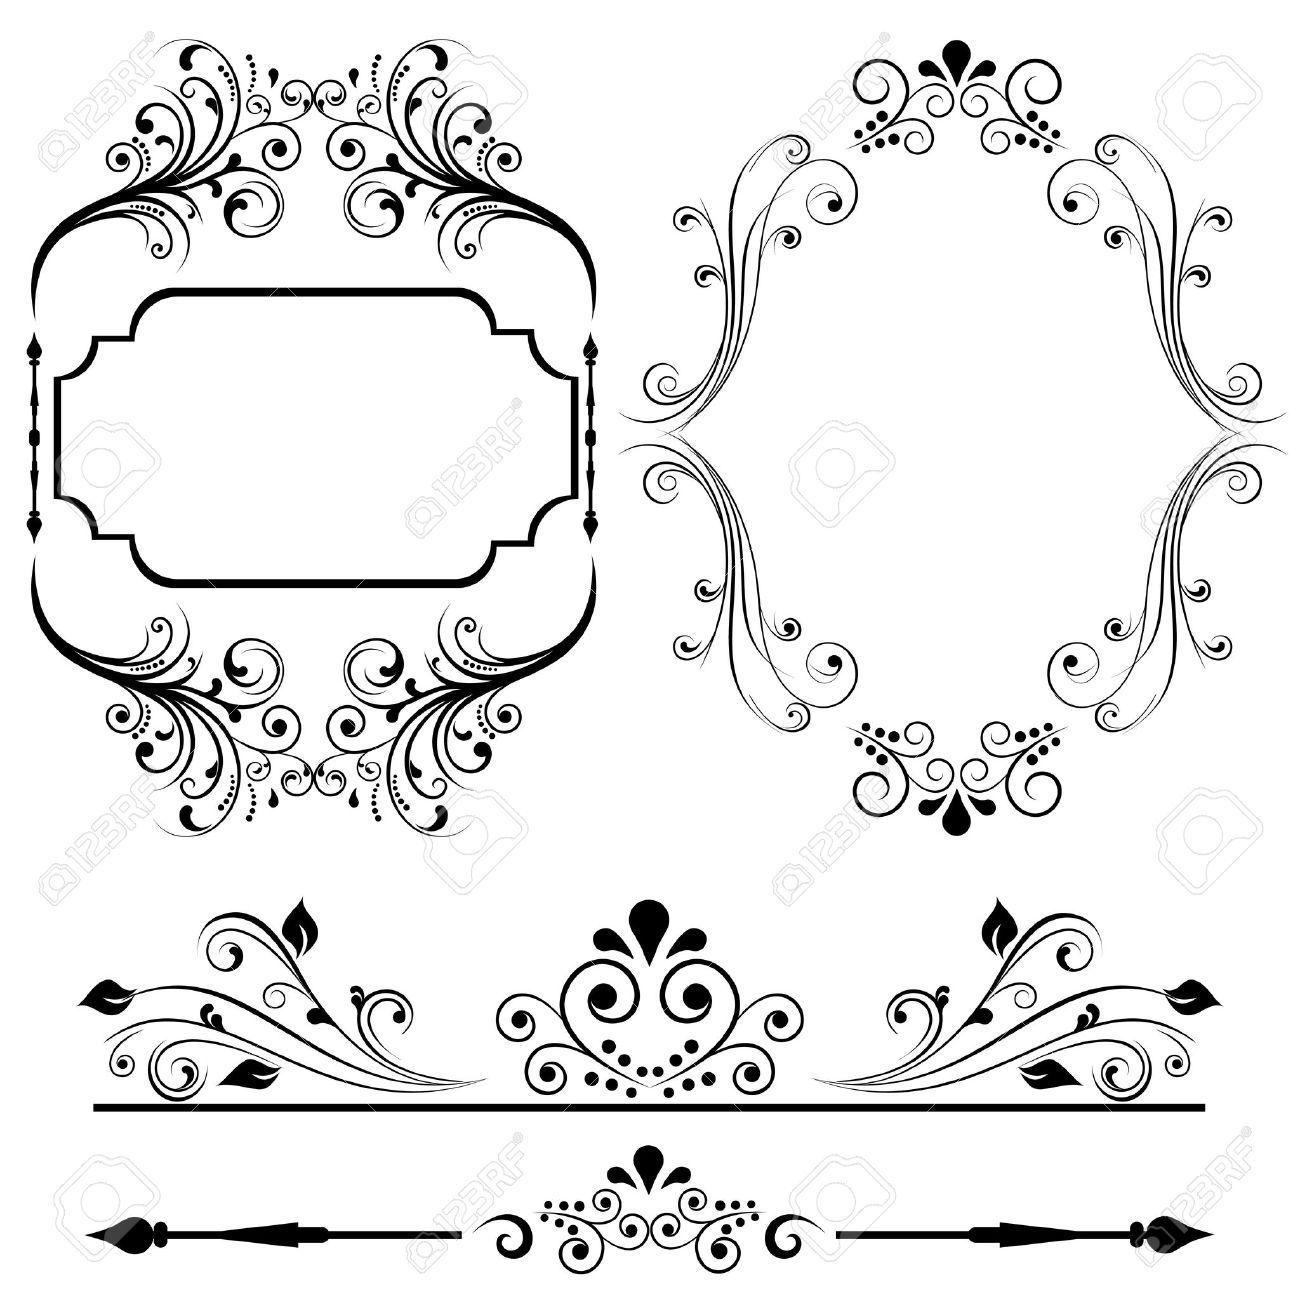 Border and frame designs for cards or invitations royalty free border and frame designs for cards or invitations stopboris Gallery